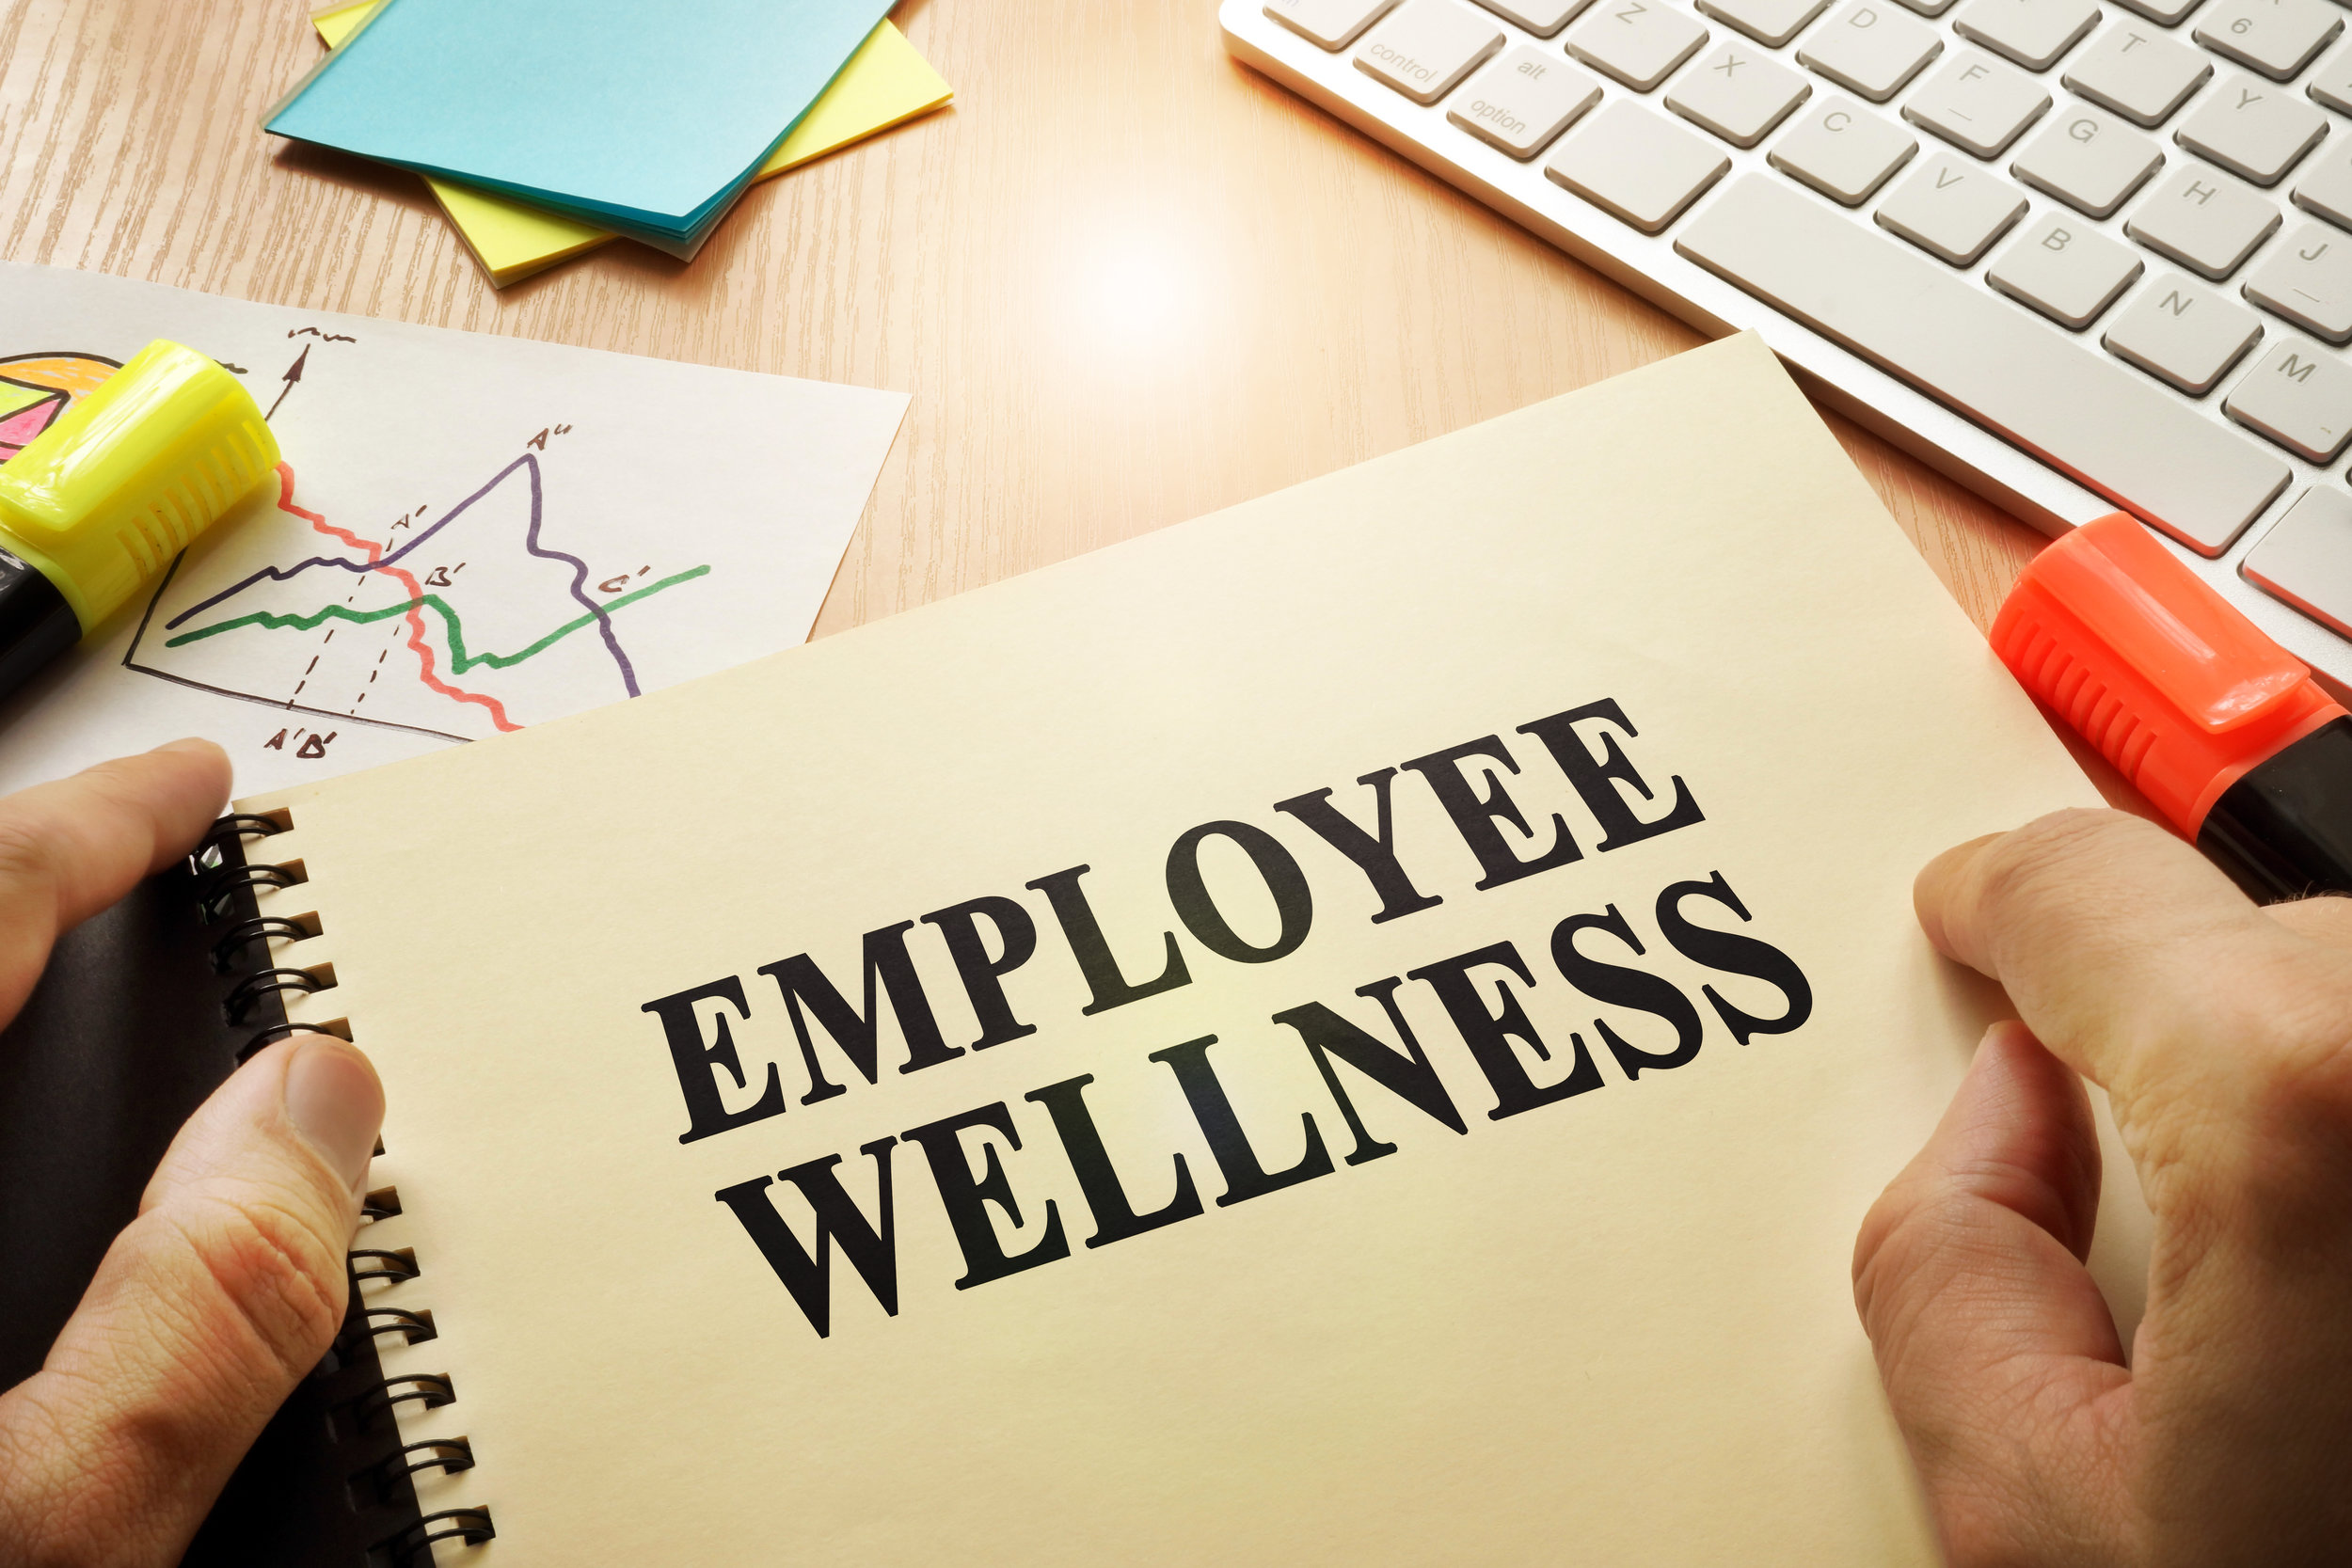 Hands-holding-documents-with-title-Employee-Wellness.-692848556_5500x3667.jpeg